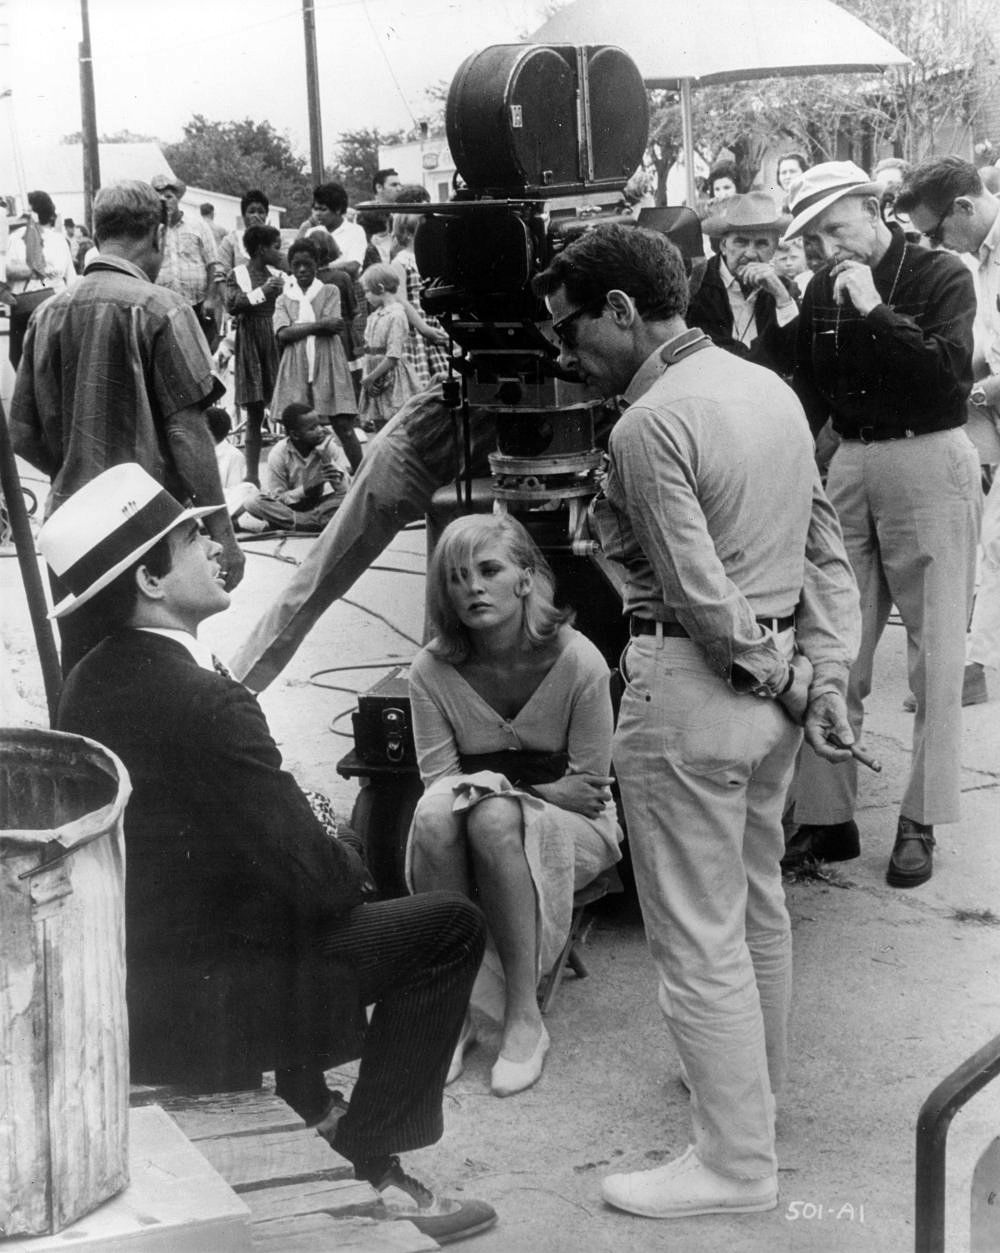 Bonnie and Clyde An Exquisite making Vision that Captured